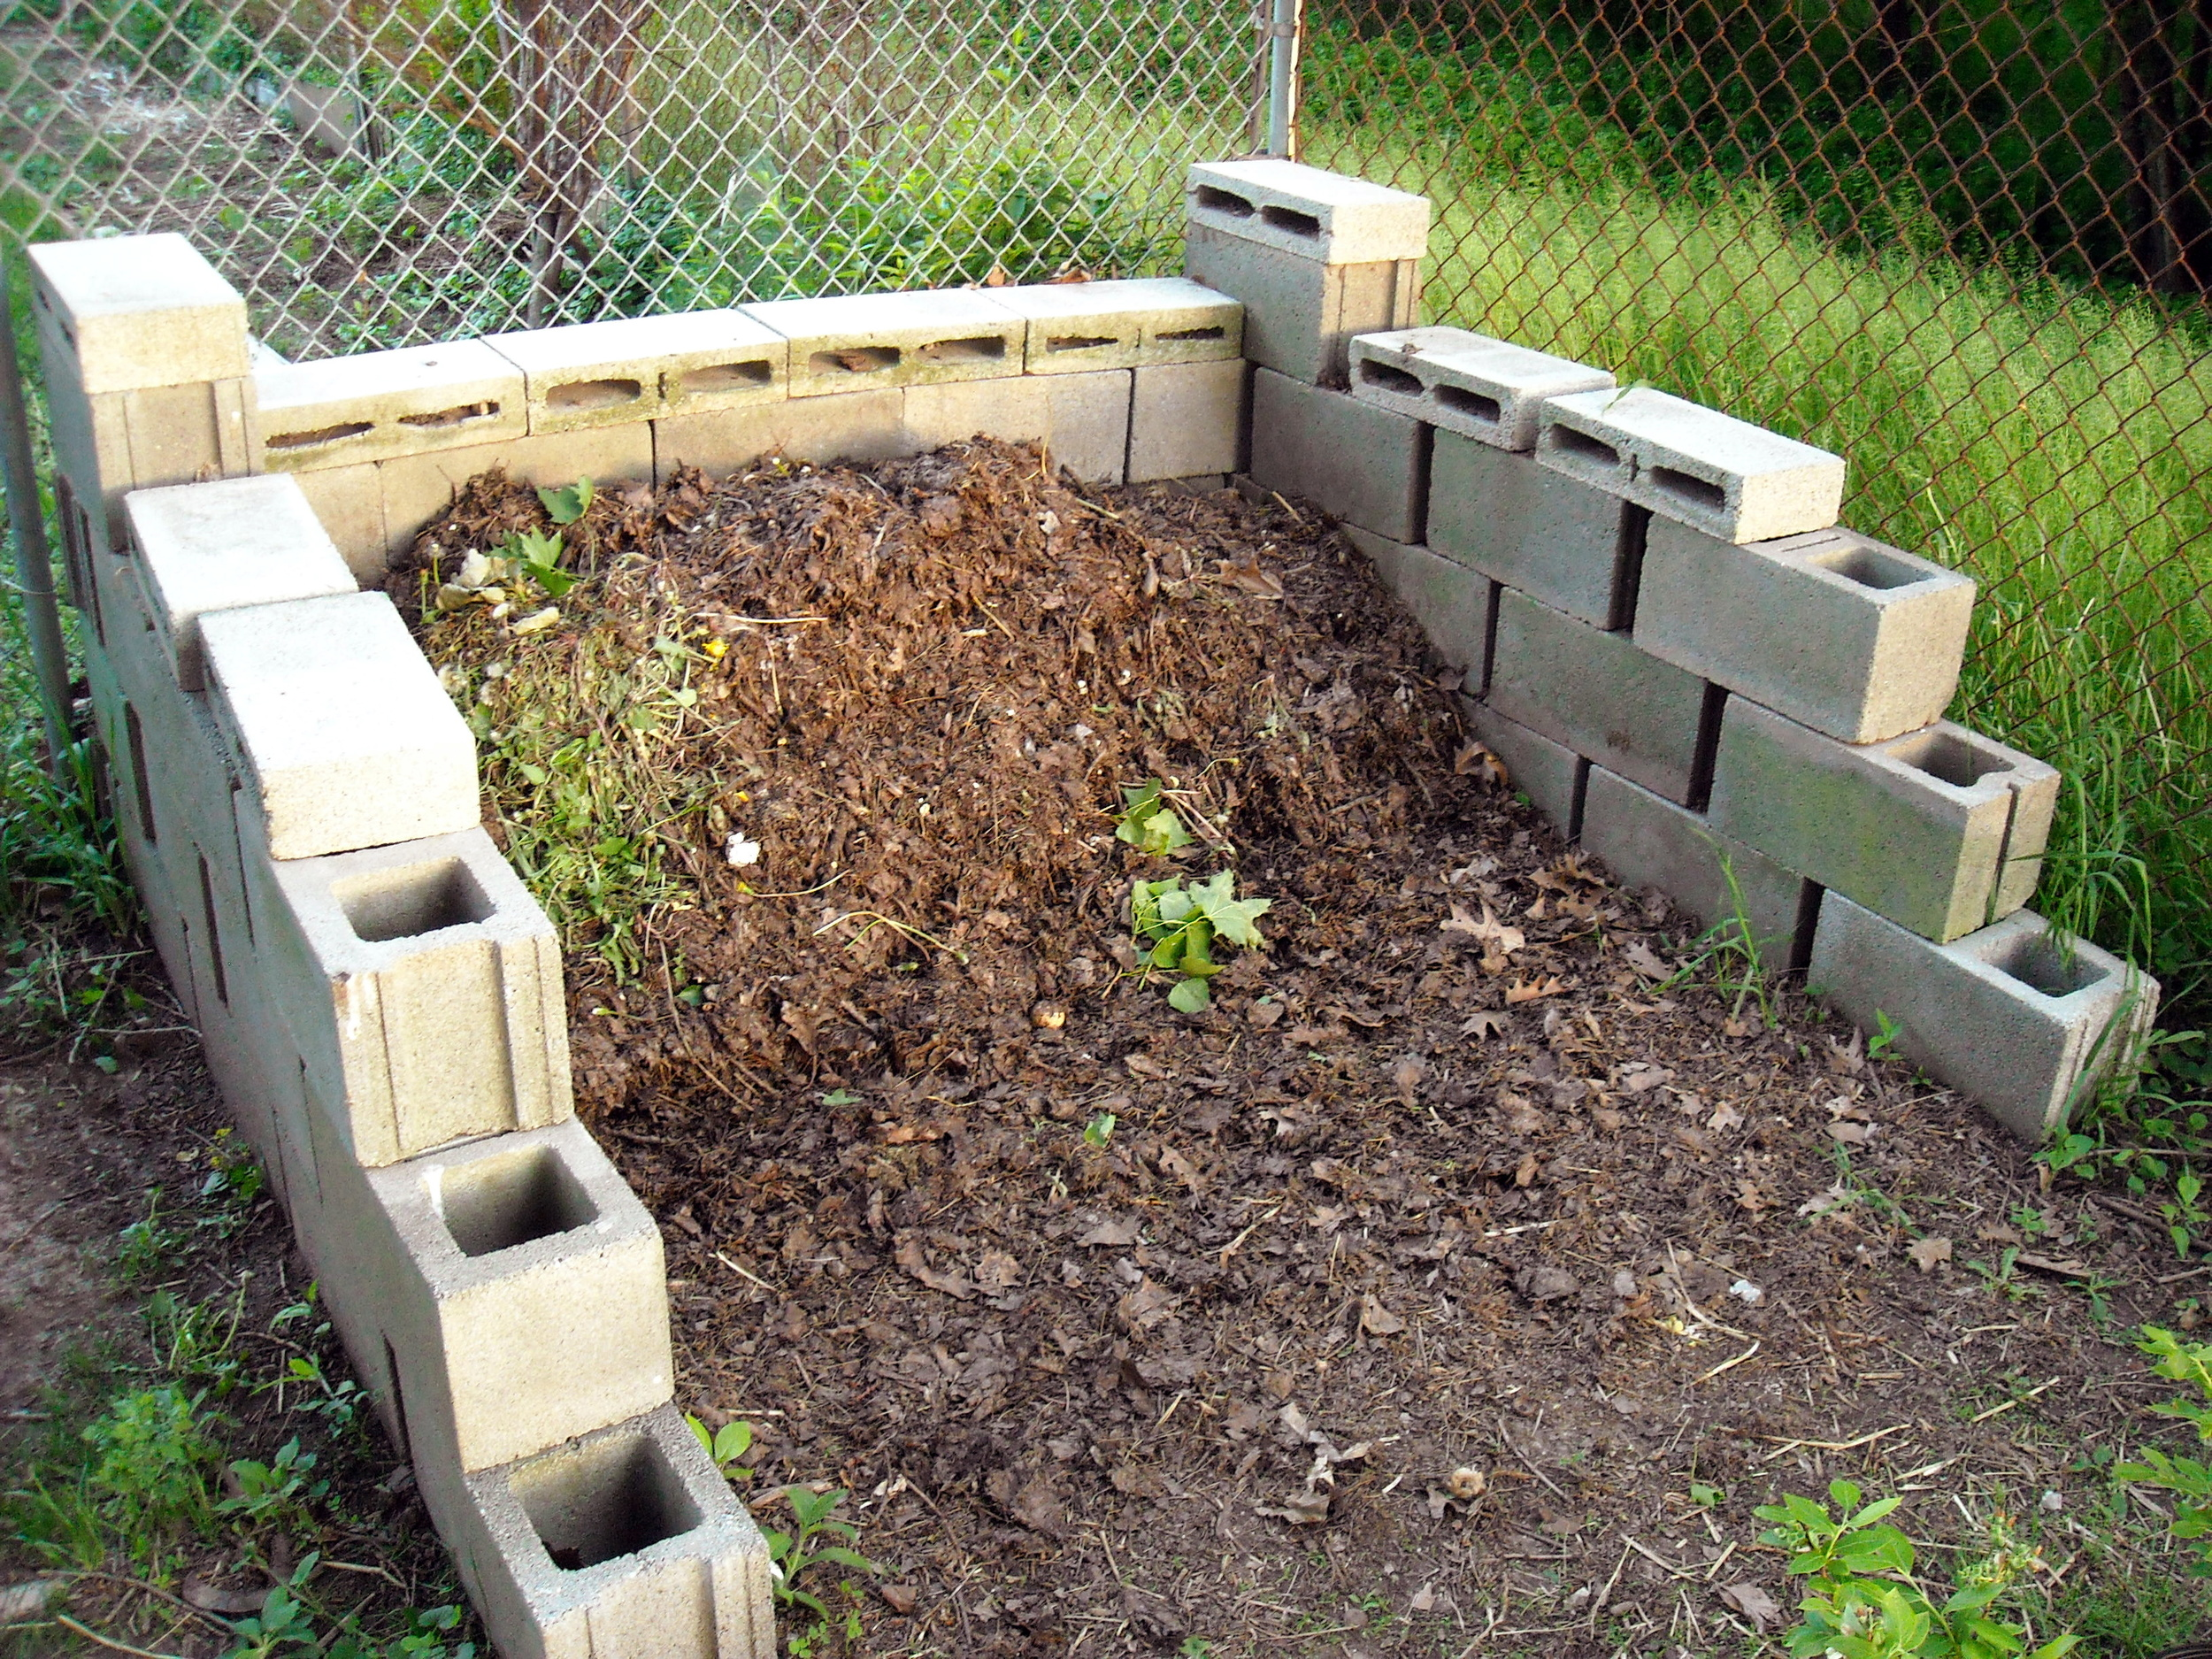 Spring Compost 2 by Scott Sherill-Mix/CC BY